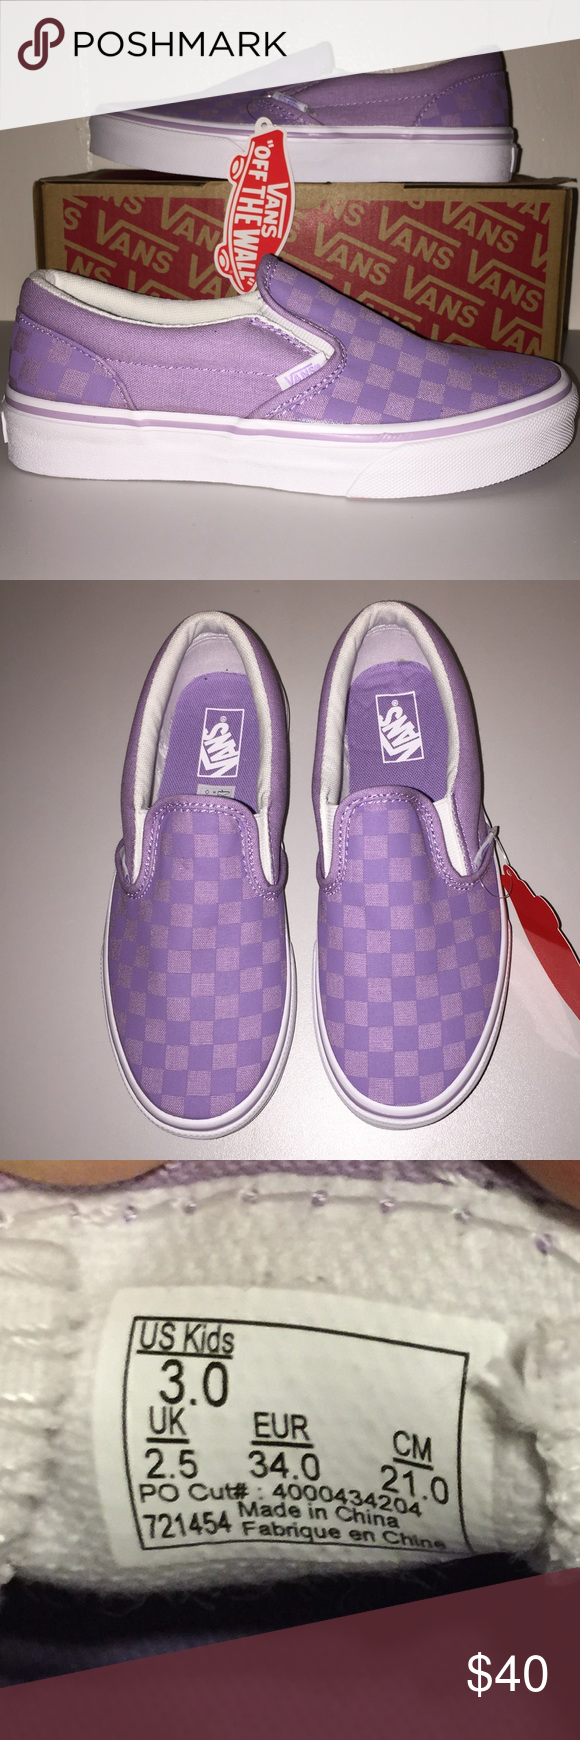 d29550e74cc NWT Vans Kids Classic Slip-On Tonal Check Lavender Pretty checkered  lavender shoes for your little fashionista. Classic slip-on design for easy  on and off.